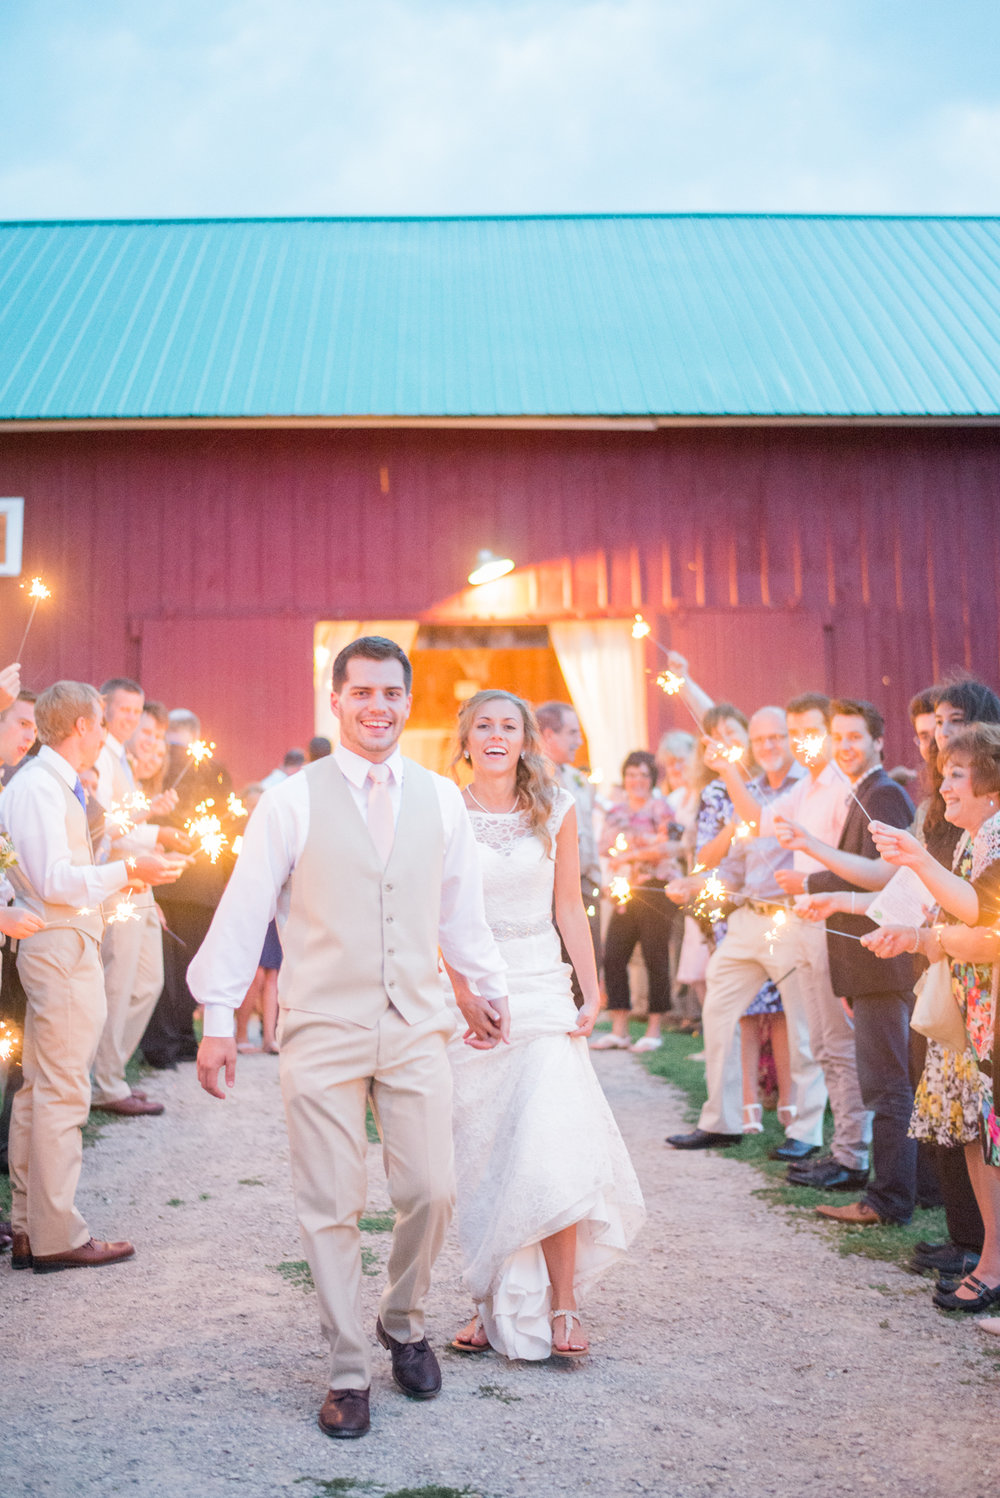 8 iowa wedding photographer - country barn wedding6.jpg